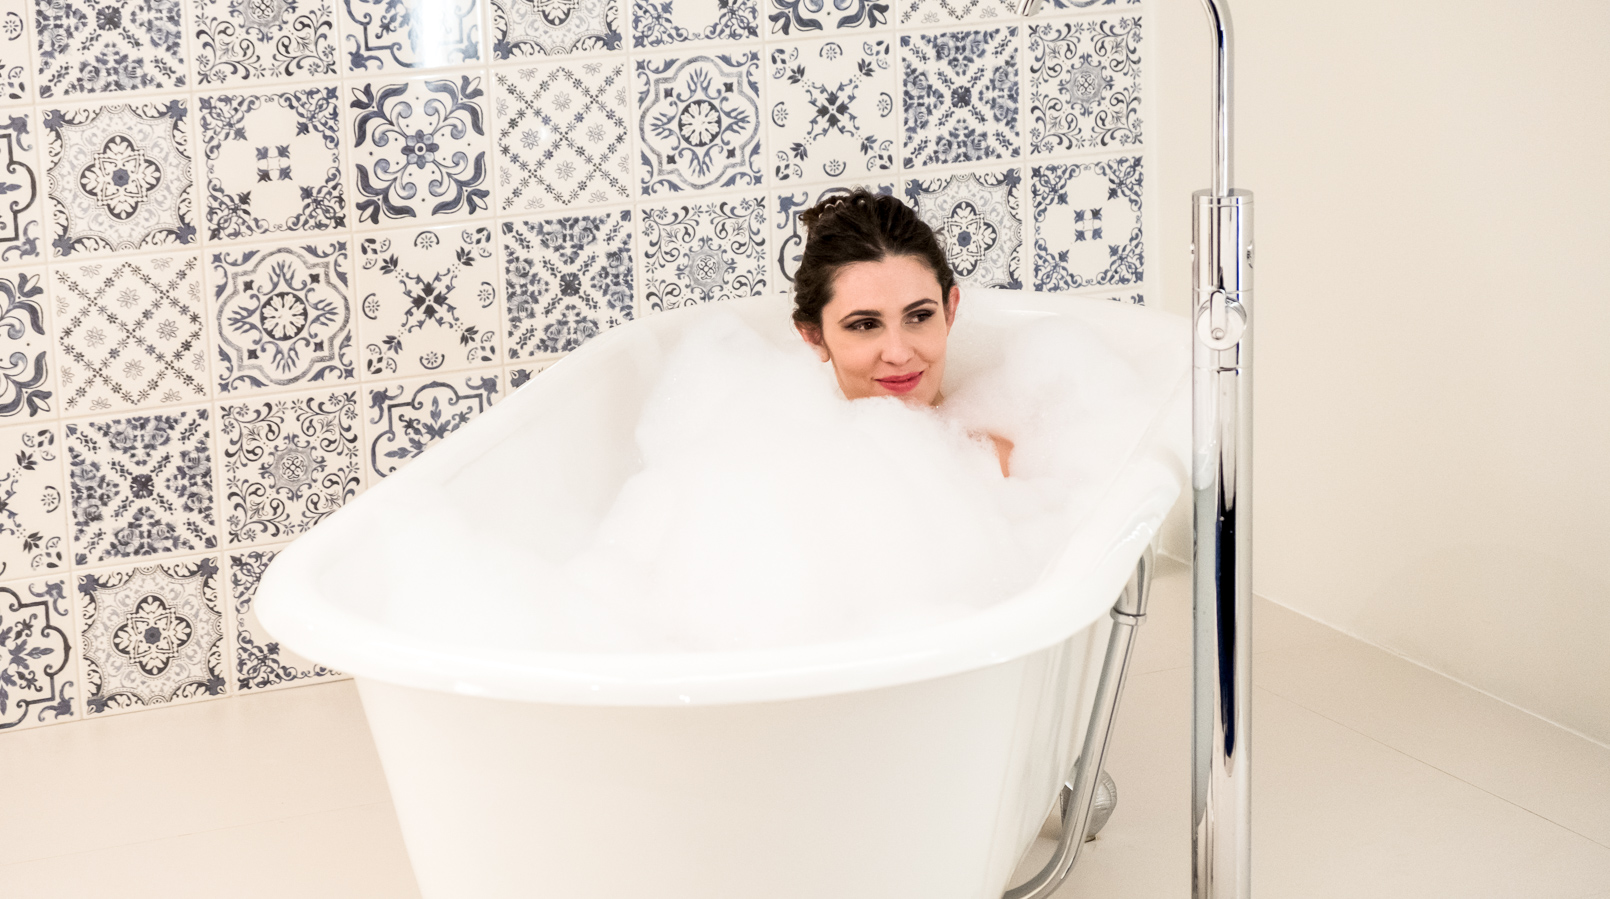 Le Fashionaire I found a Crystal in Oporto's heart cristal hotel oporto bath tube vitorian style white silver bubble bath blue white portuguese tiles 3810F EN